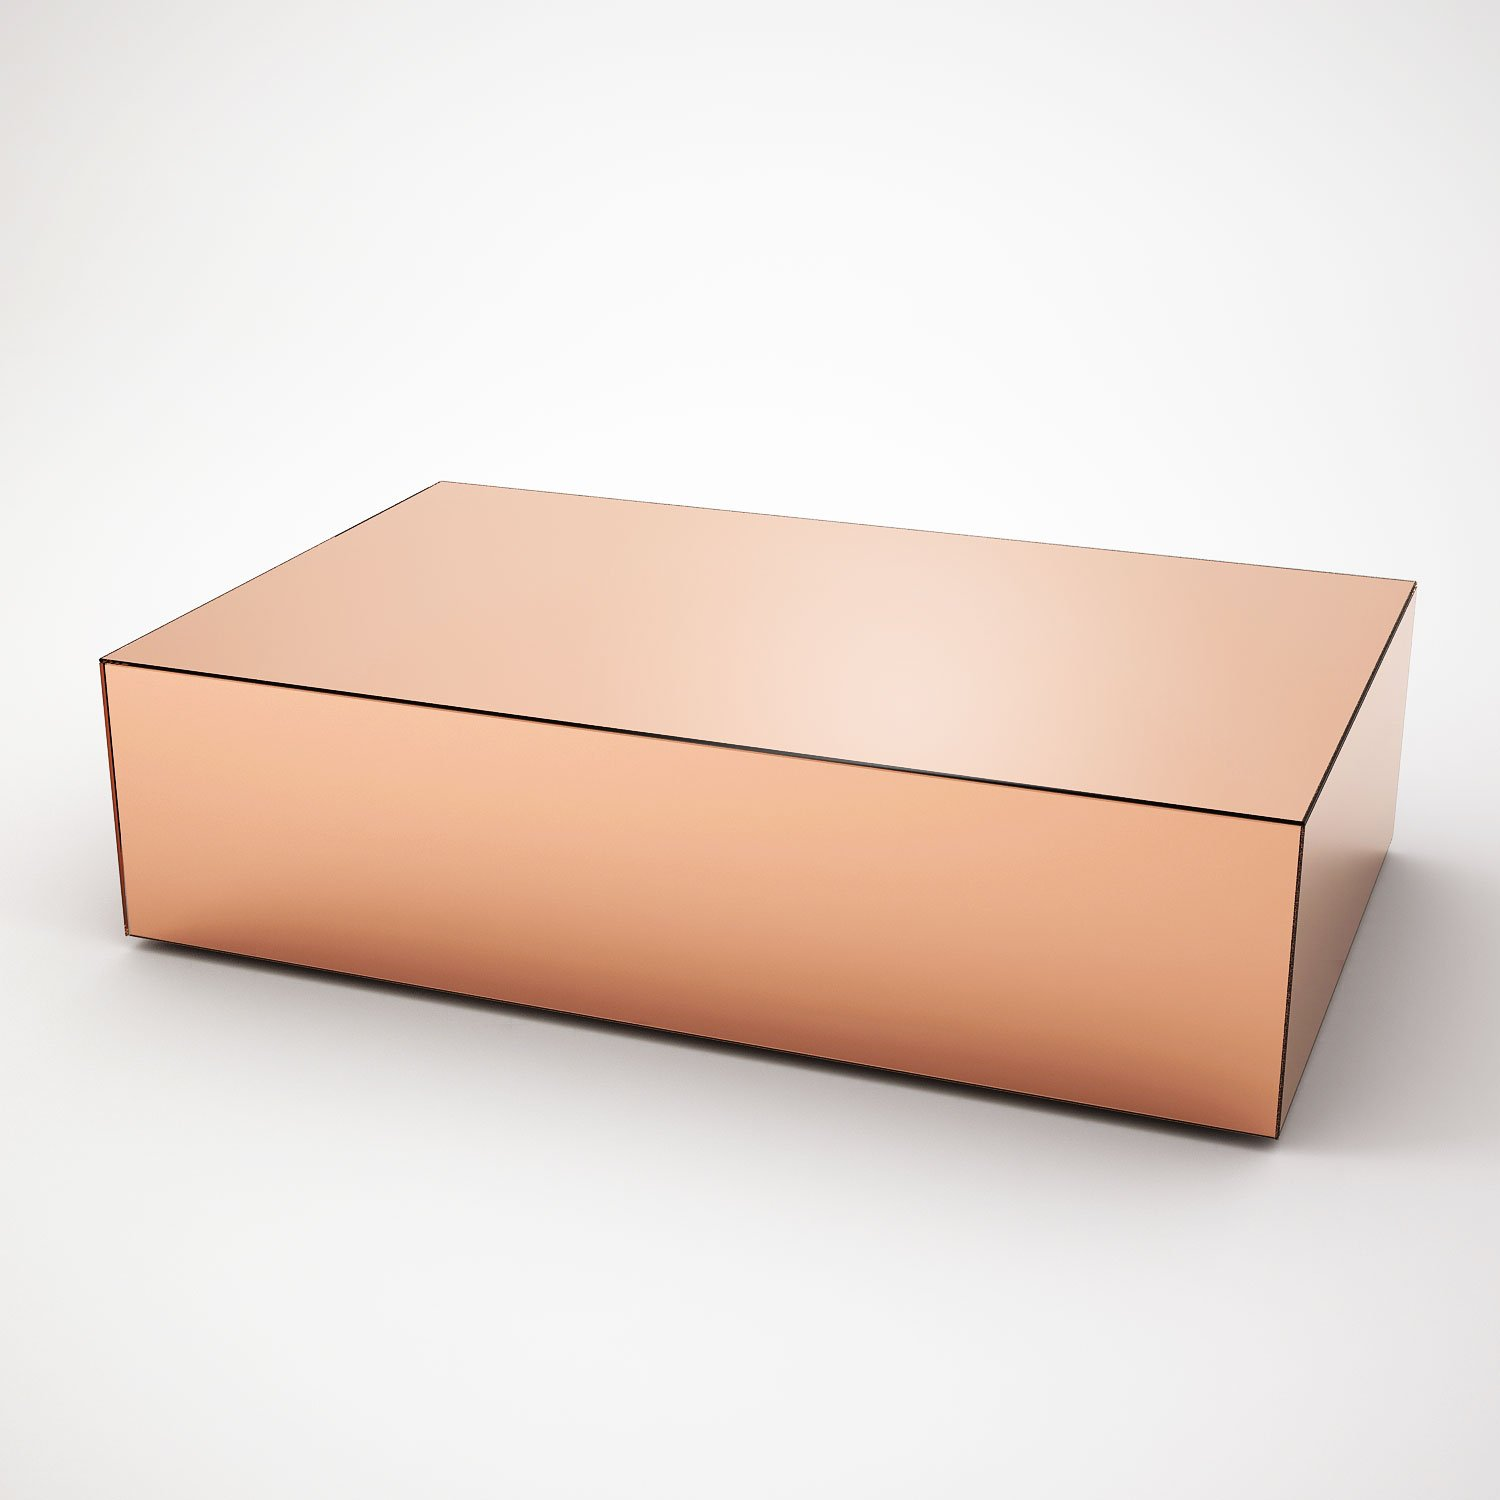 Rectangular Copper Mirrored Coffee Table By Mirrorbox